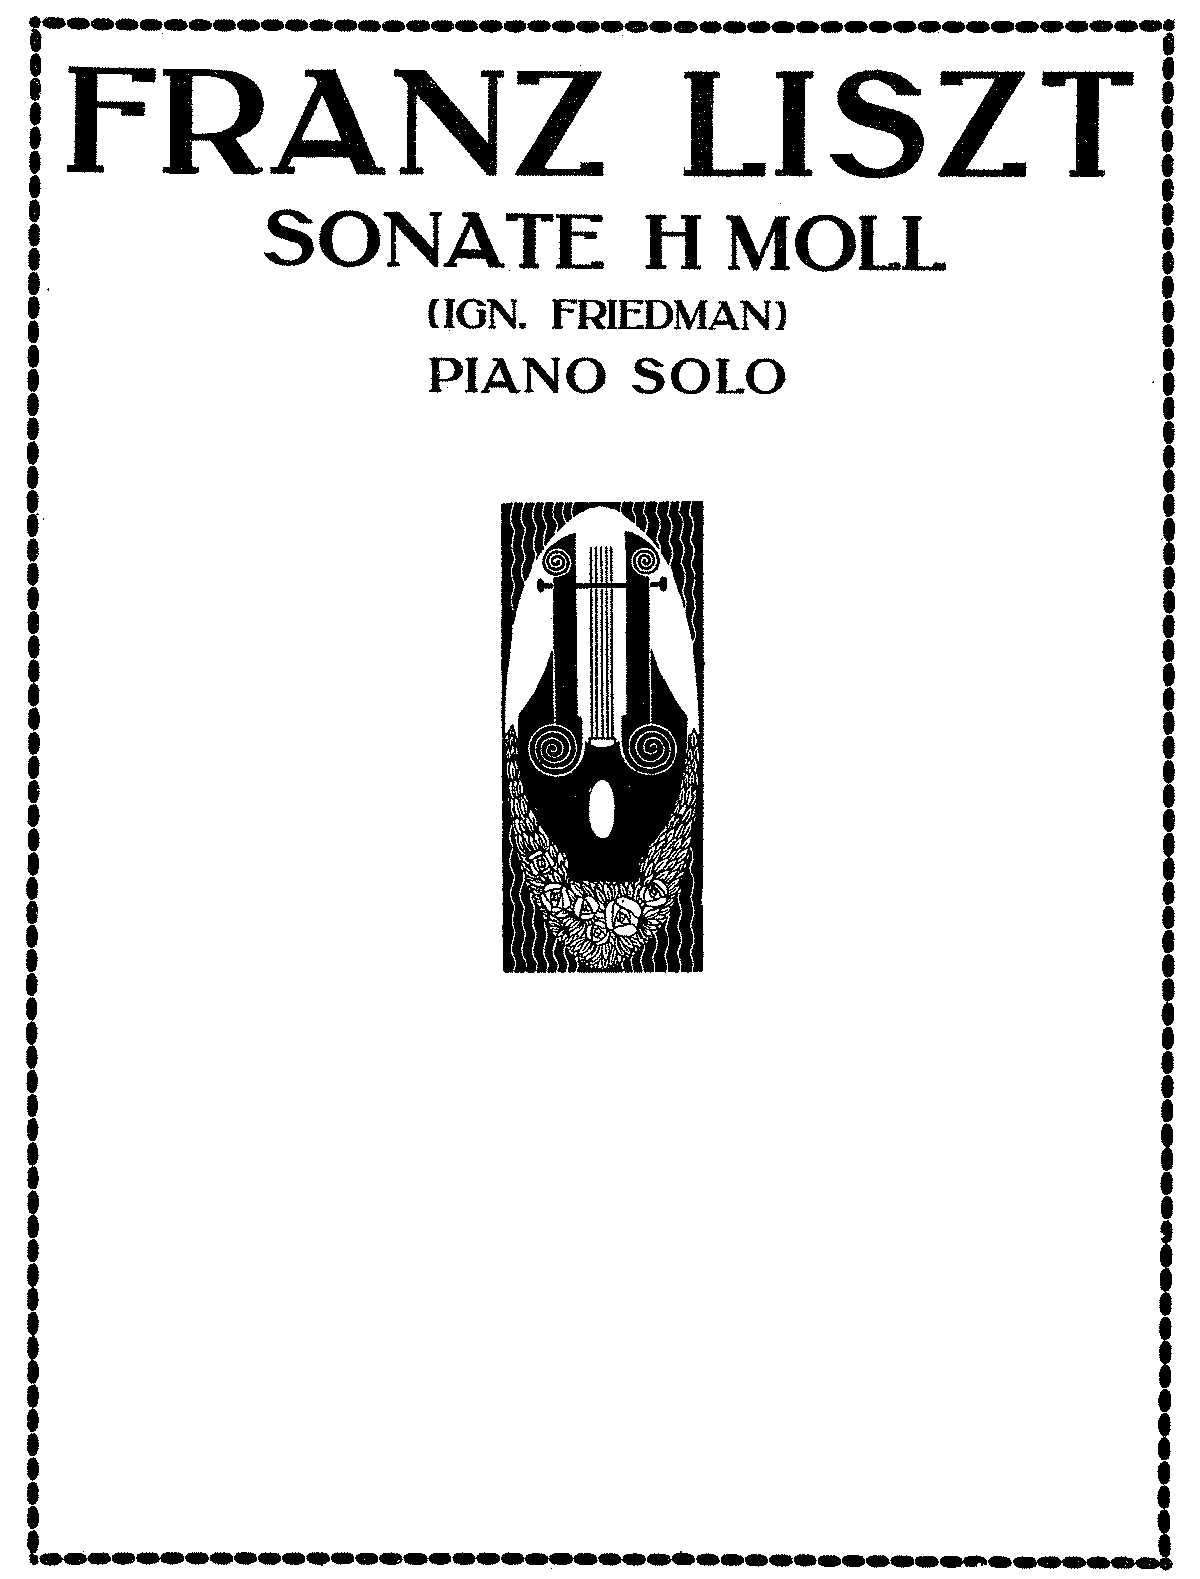 PMLP14018-S.178 - Piano Sonata in B minor (1917 Universal, Friedman).pdf